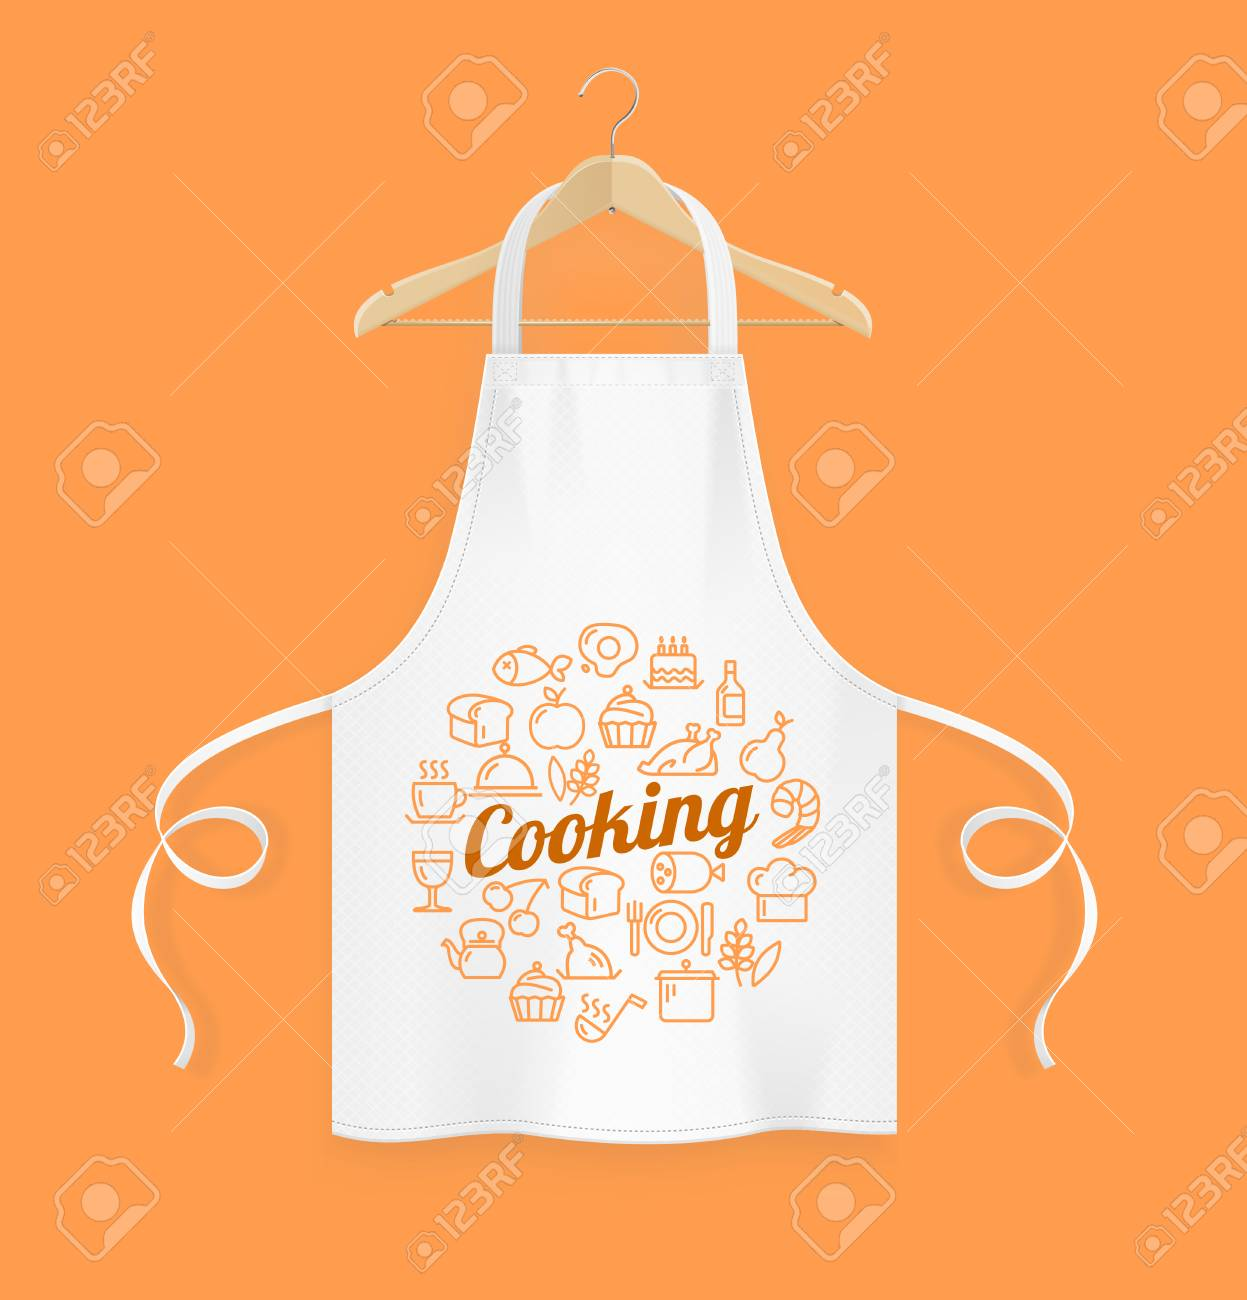 Realistic Detailed 3d White Kitchen Apron with Wooden Clothes Hanger. Vector - 108657922